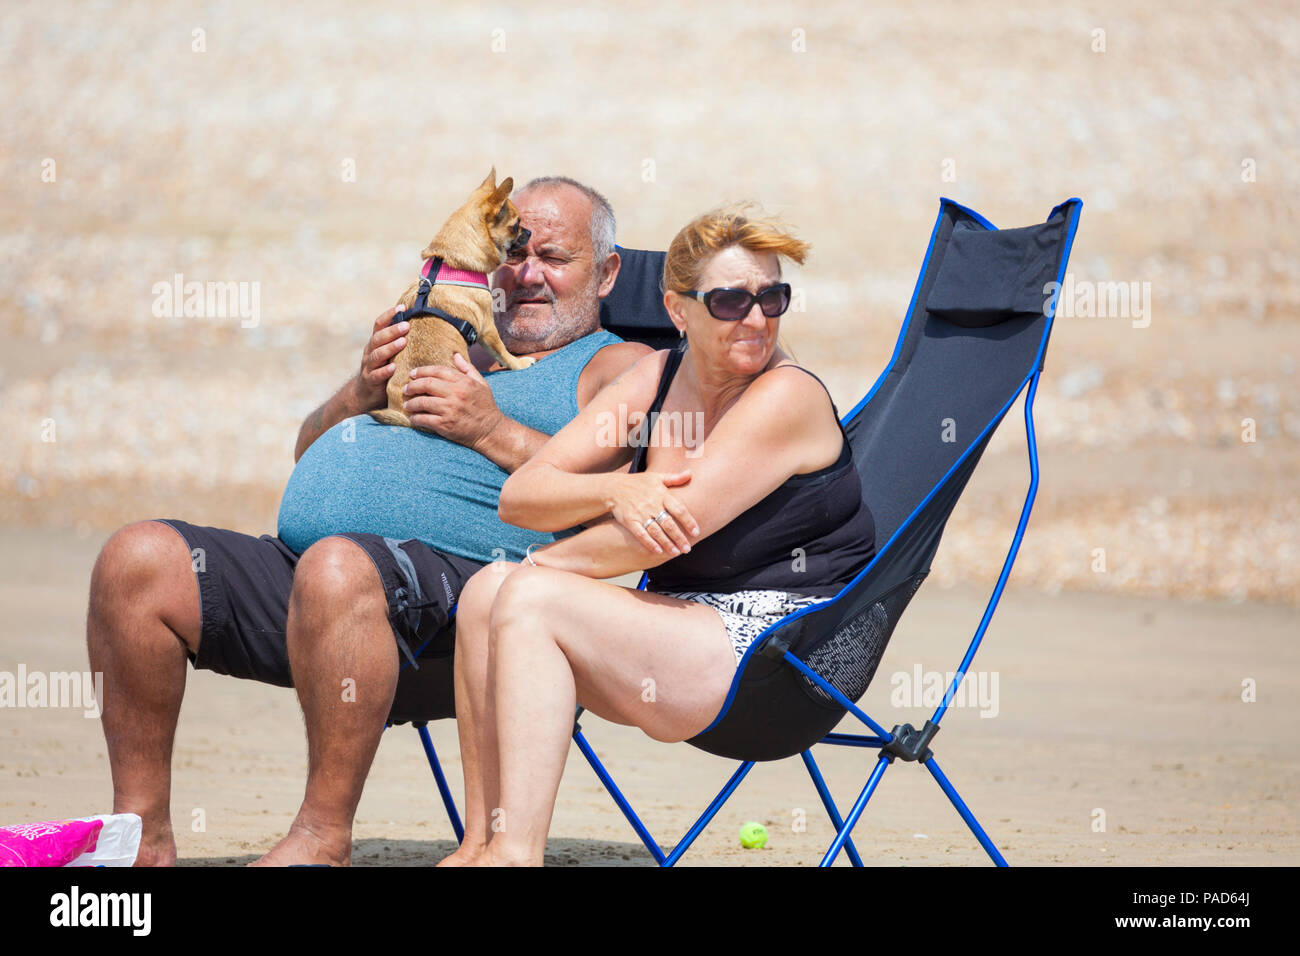 Camber Sands, East Sussex, UK. 22nd Jul, 2018. UK Weather: Hot and sunny weather in camber with scores of people hitting the beach early as this is predicted to be another scorcher of a day. Temperatures are expected to exceed 25°C. Pictured is a man in a deckchair with dog in his lap licking his face. Photo Credit: Paul Lawrenson / Alamy Live News - Stock Image